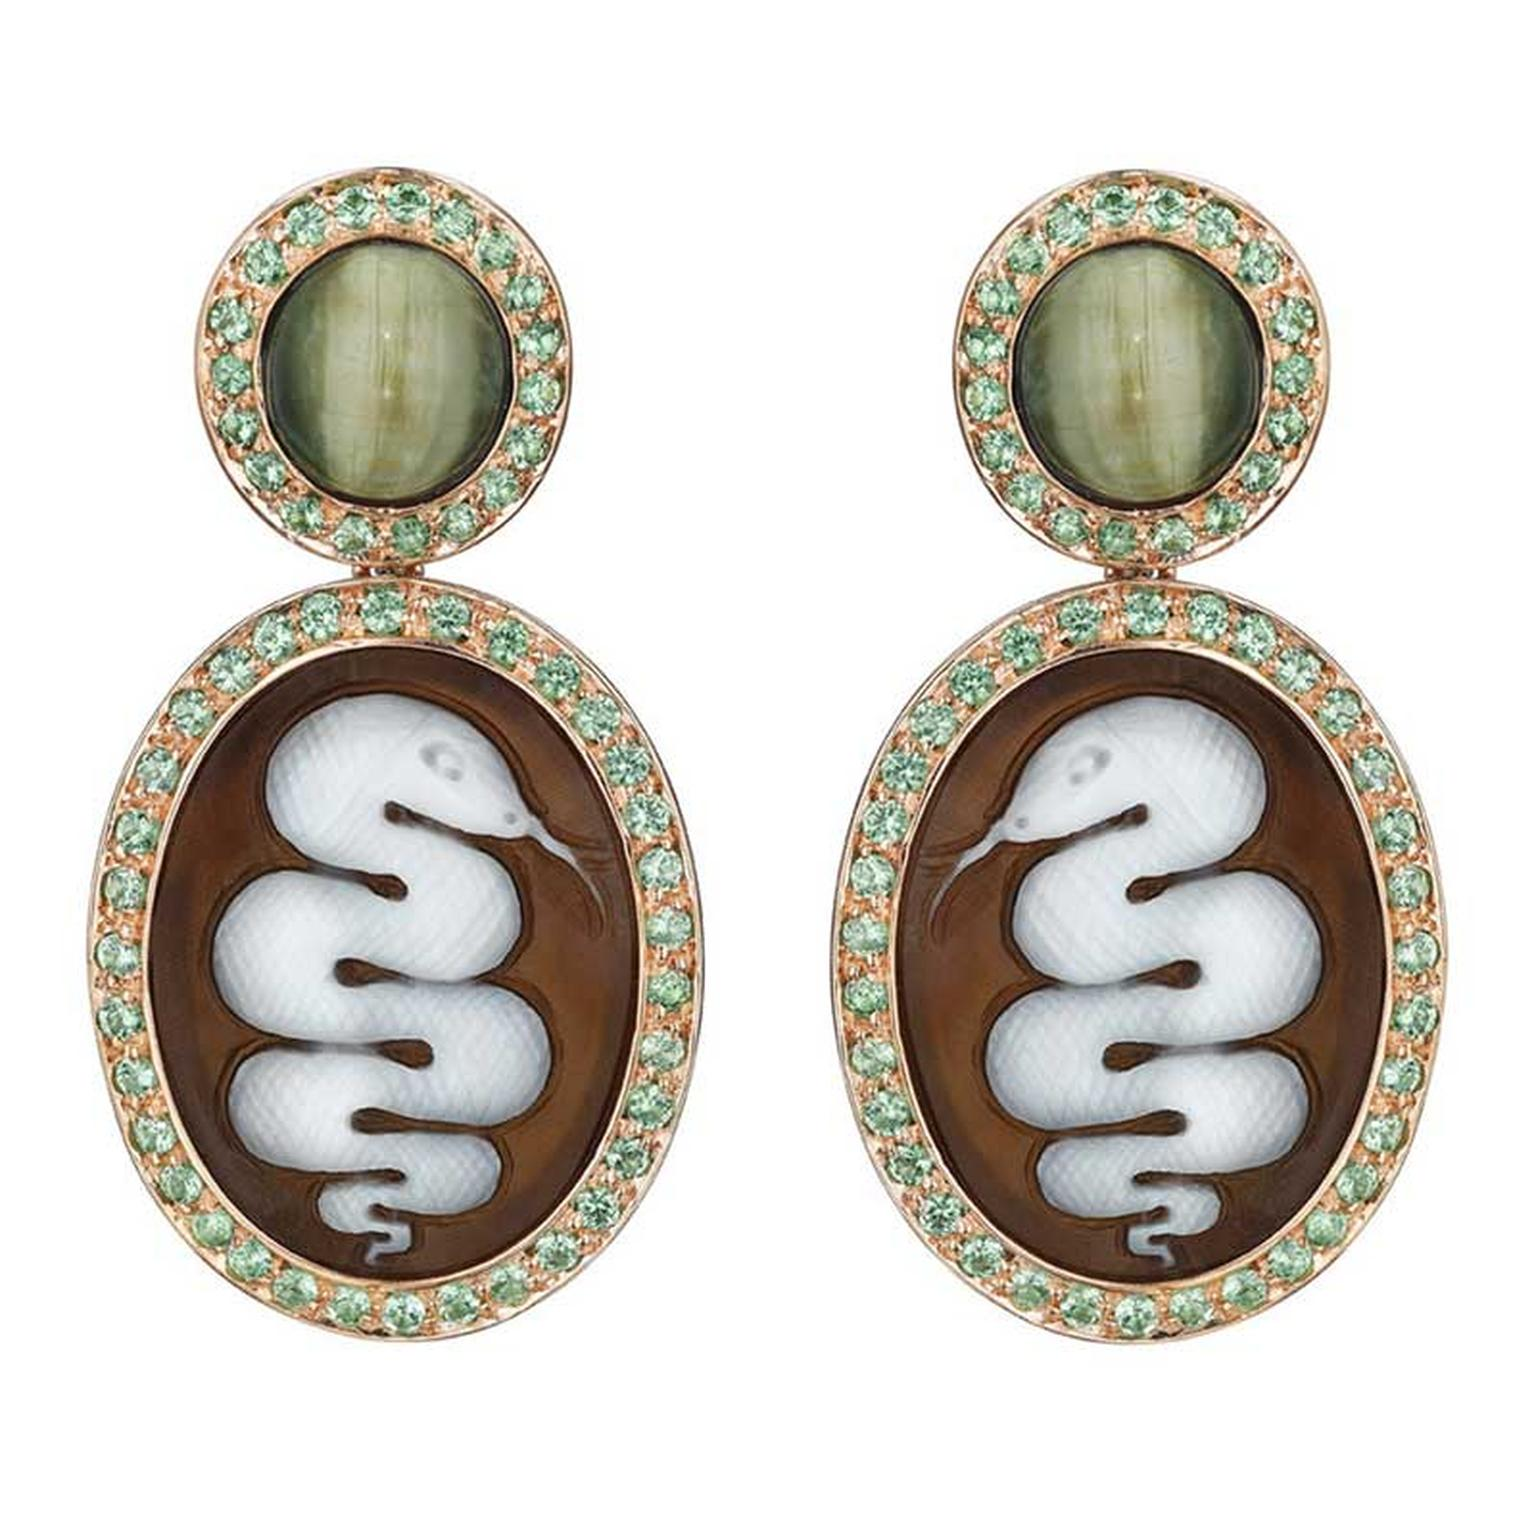 Amedeo Couture Serpent cameo earrings